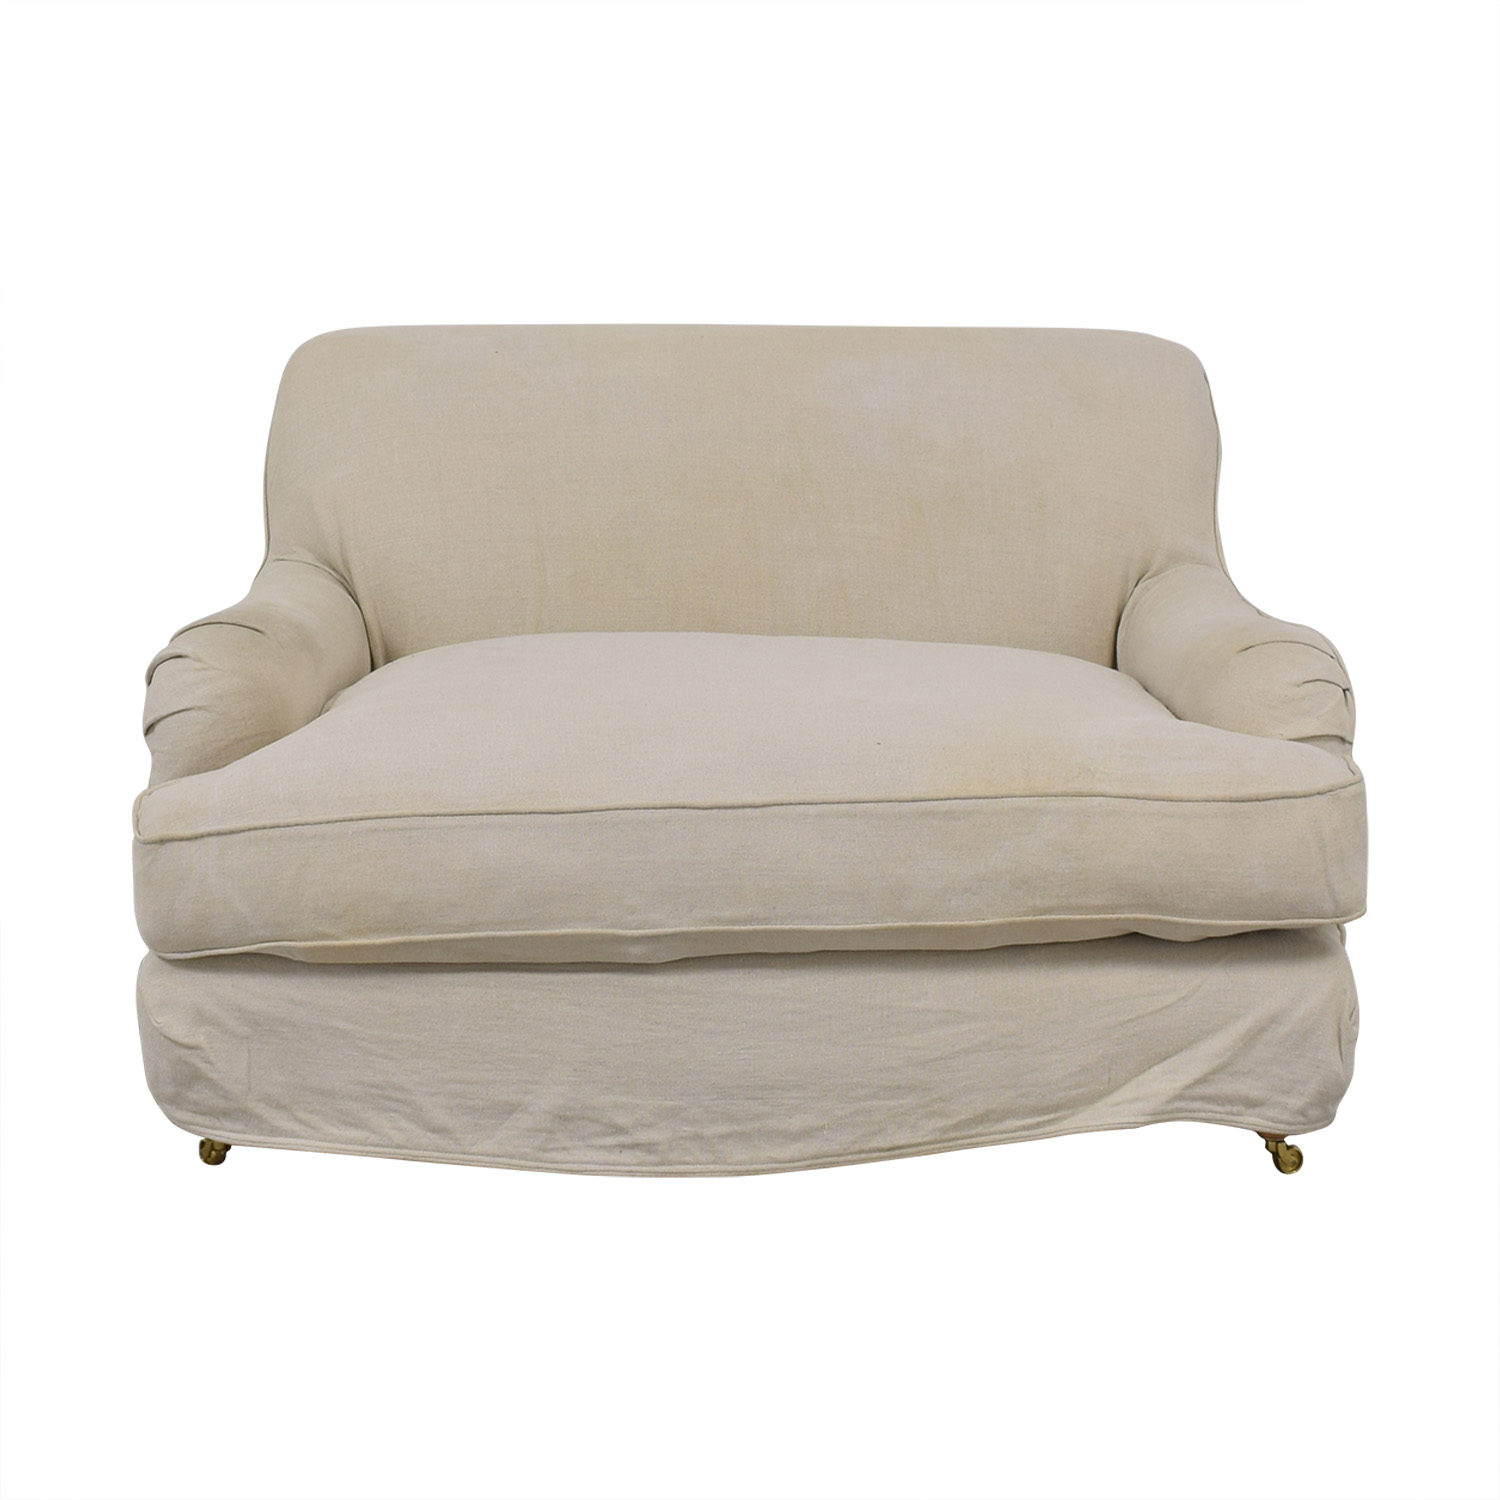 Rachel Ashwell Shabby Chic Rachel Ashwell Shabby Chic Chair and Half coupon